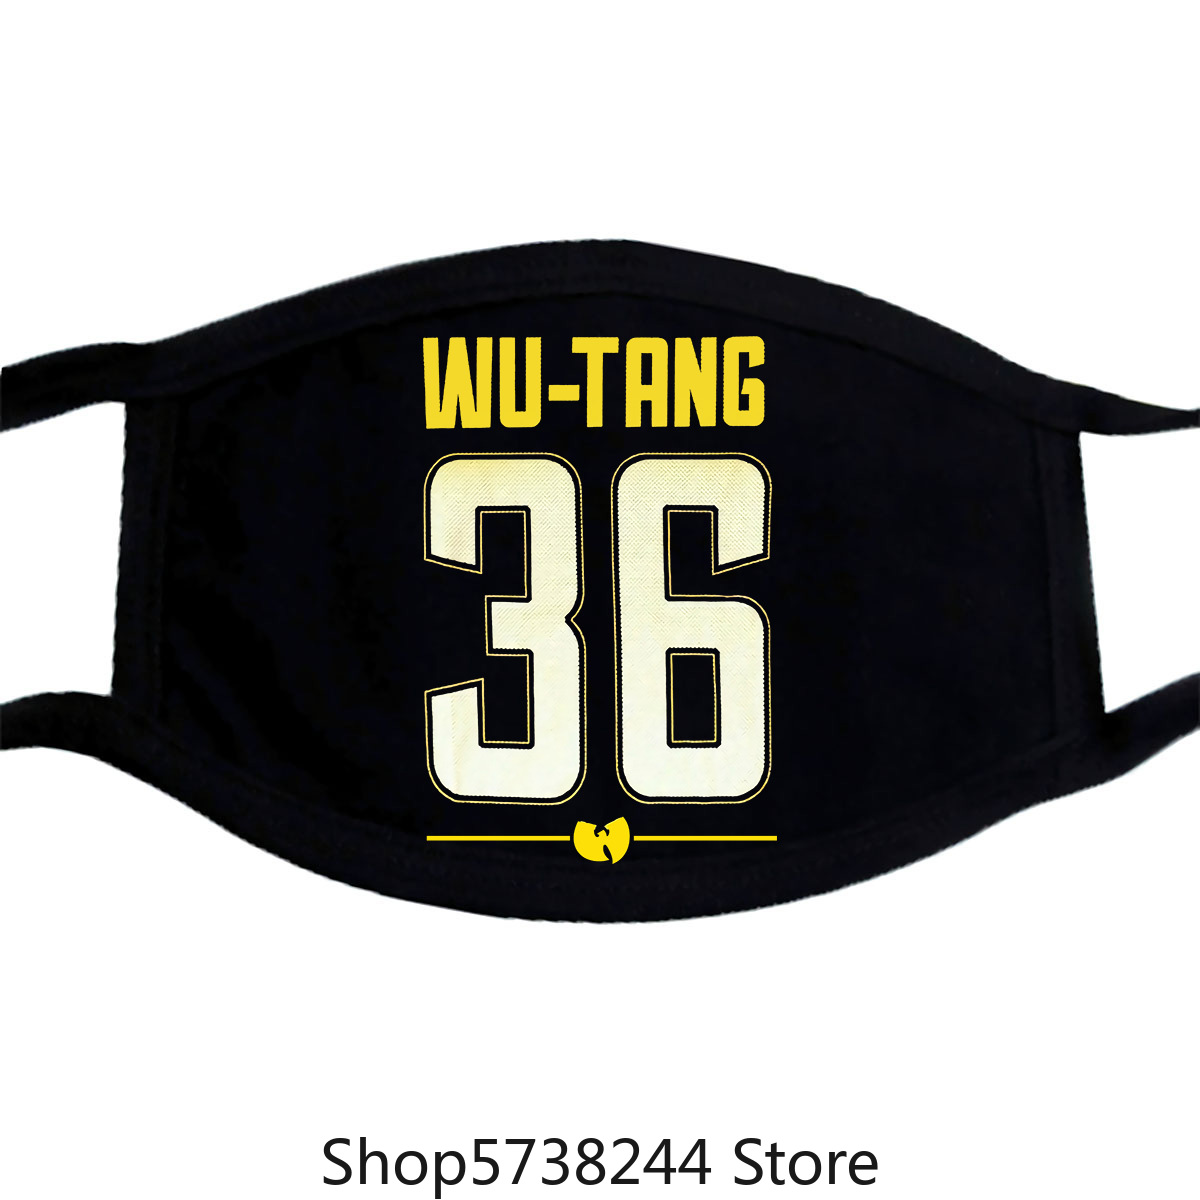 Wu Tang Clan Shirsey 36 Mesh Jersey Logo Black Mask New Official Merch Washable Reusable Mask With